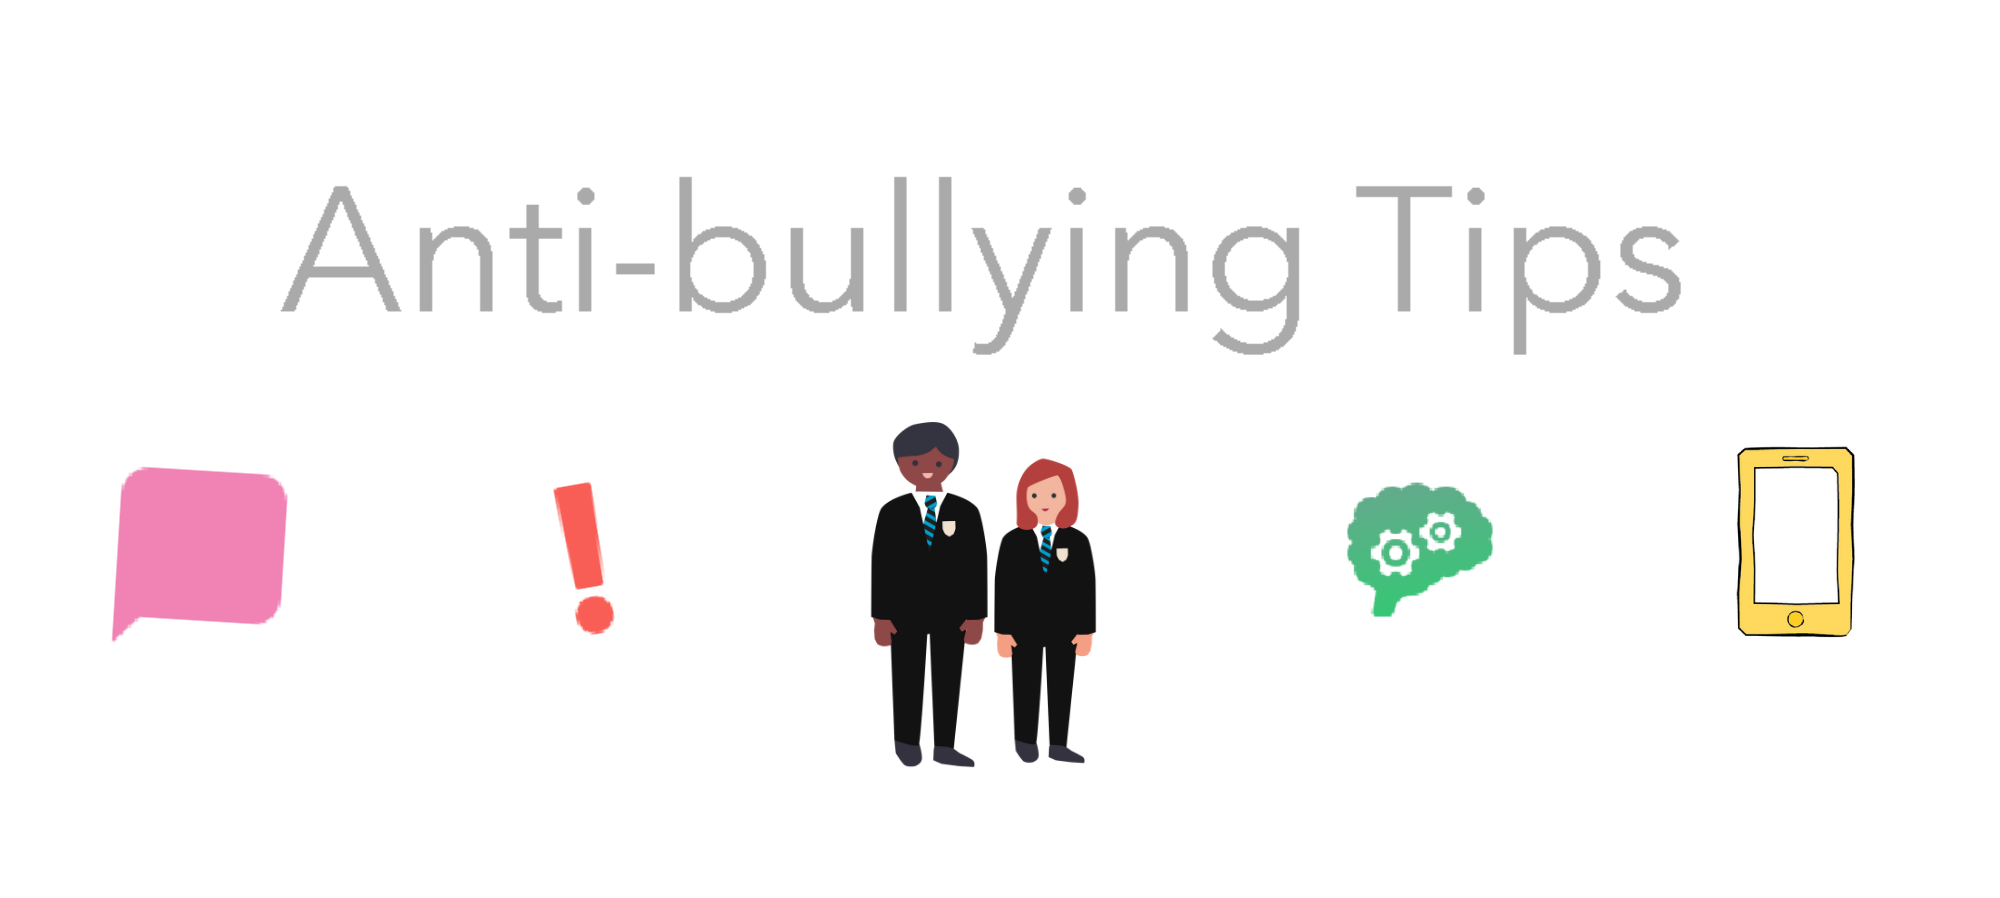 Our Anti-bullying Tips